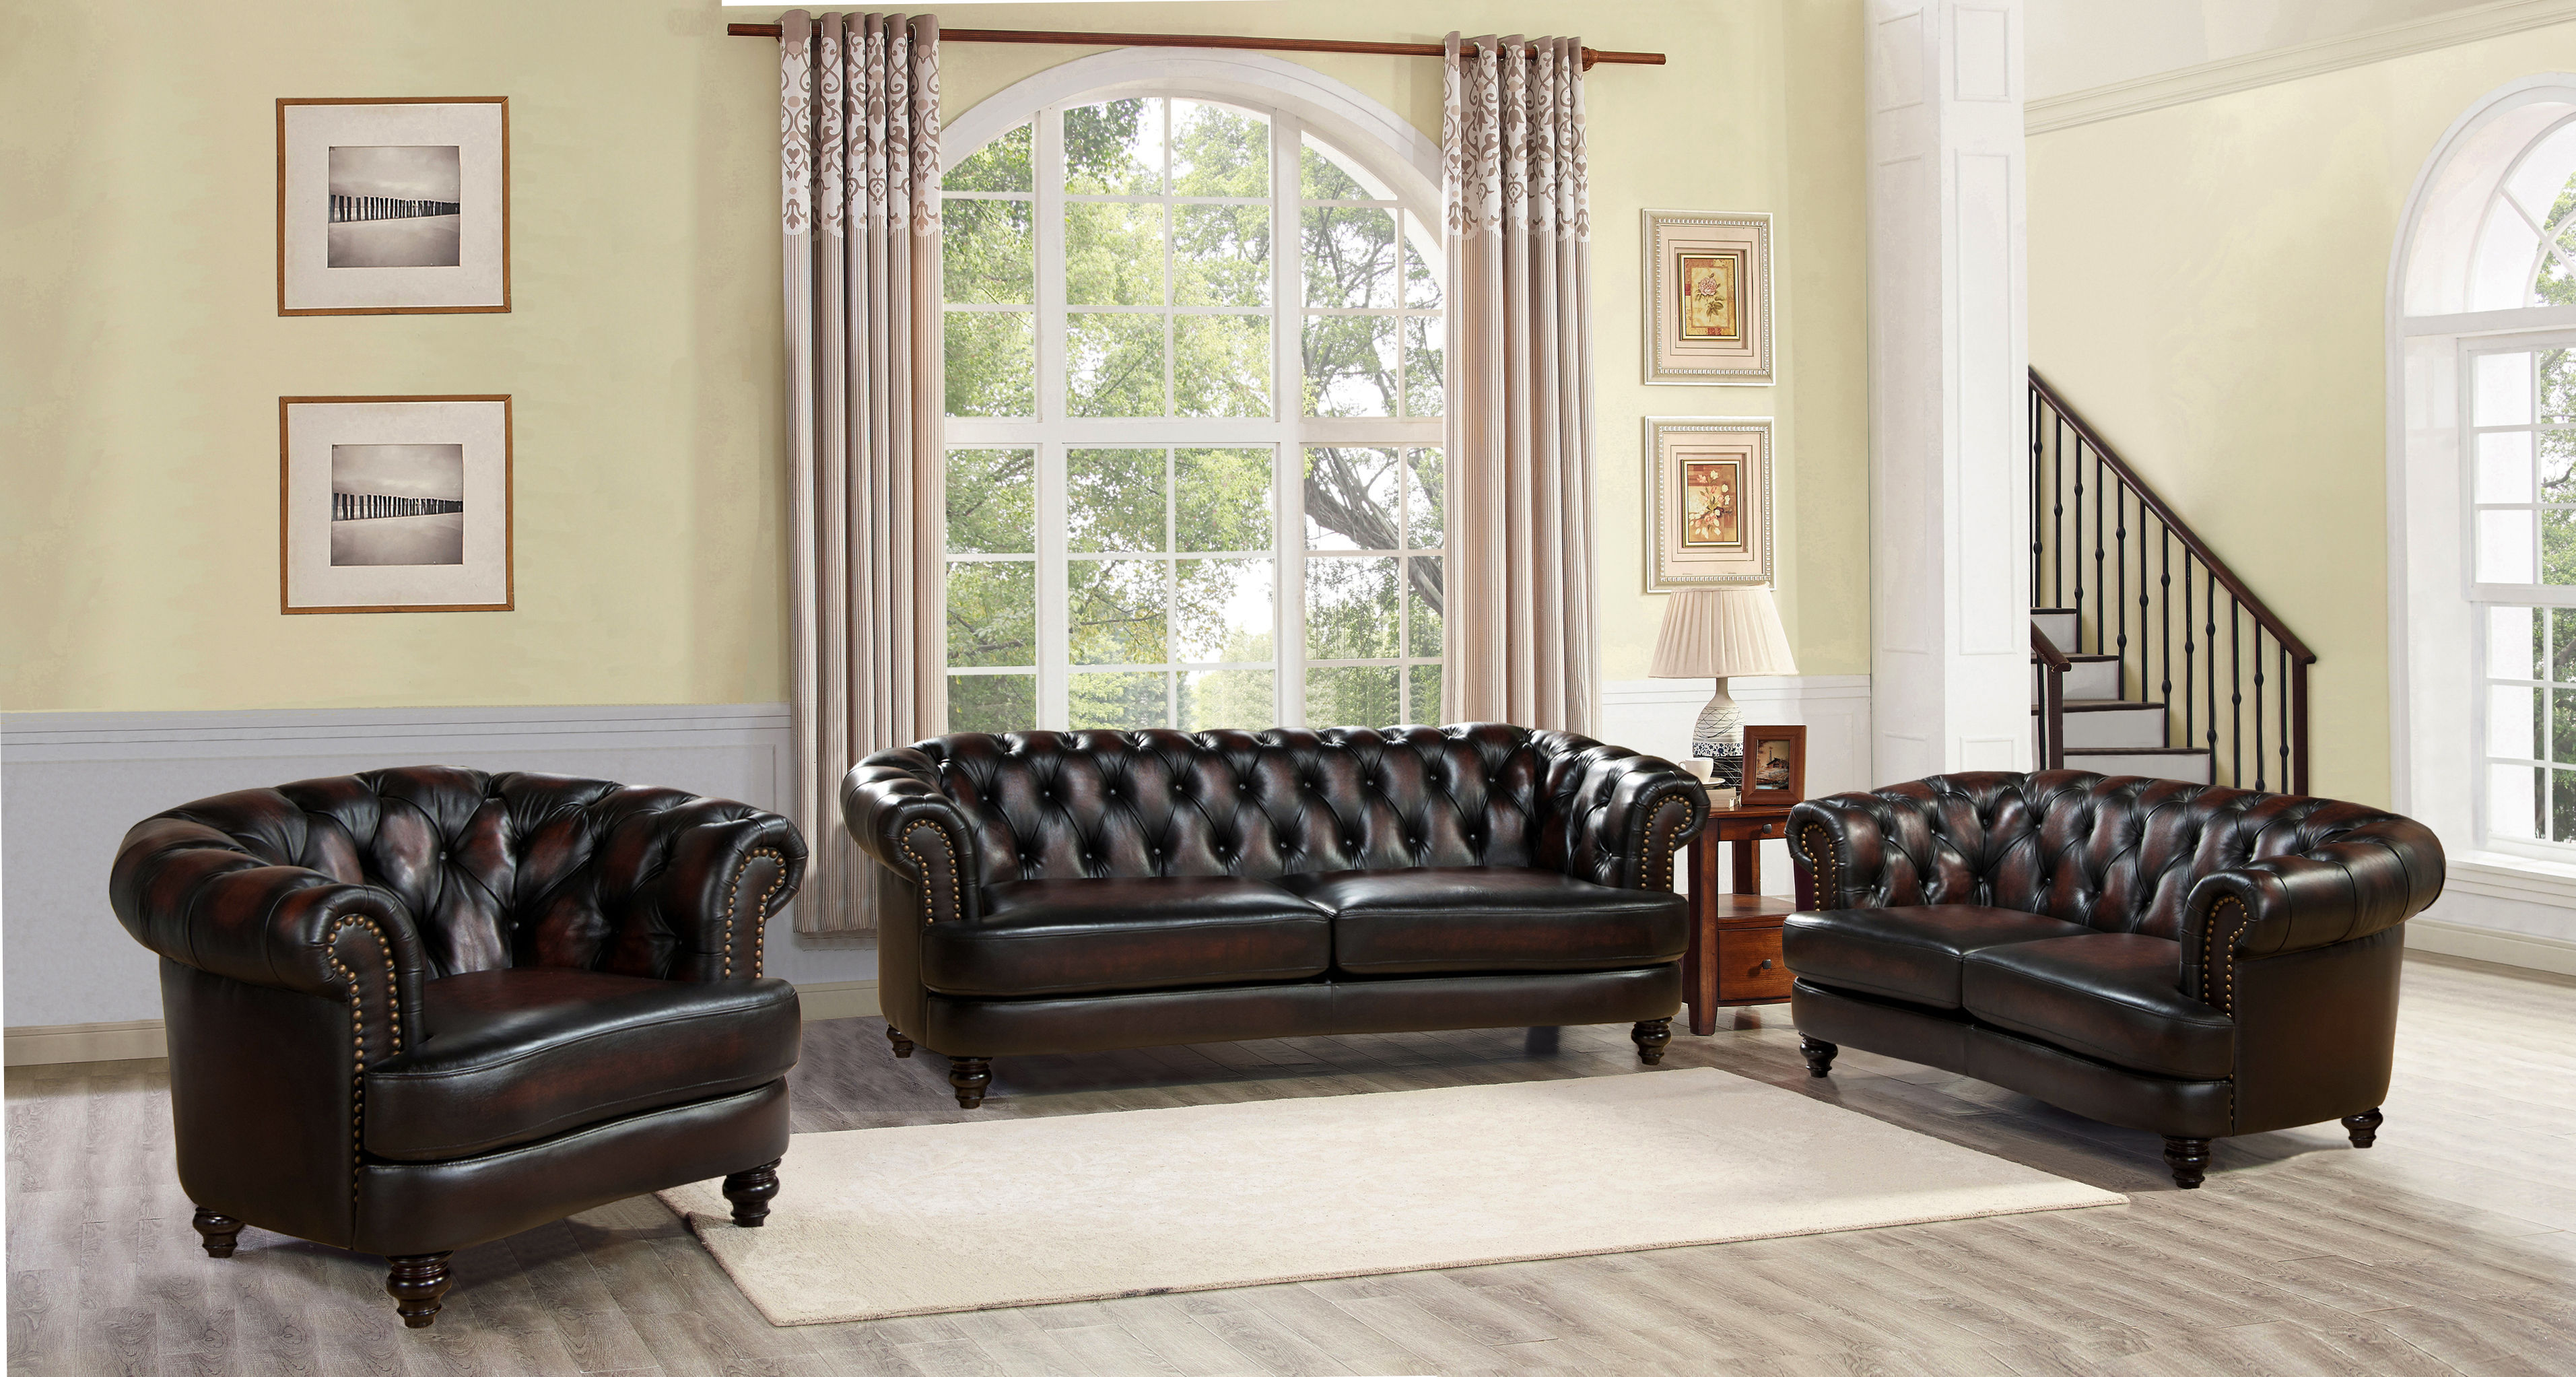 Hydeline Mario Burgundy Brown 3pc Living Room Set The Classy Home throughout 12 Smart Ways How to Makeover Burgundy Living Room Set